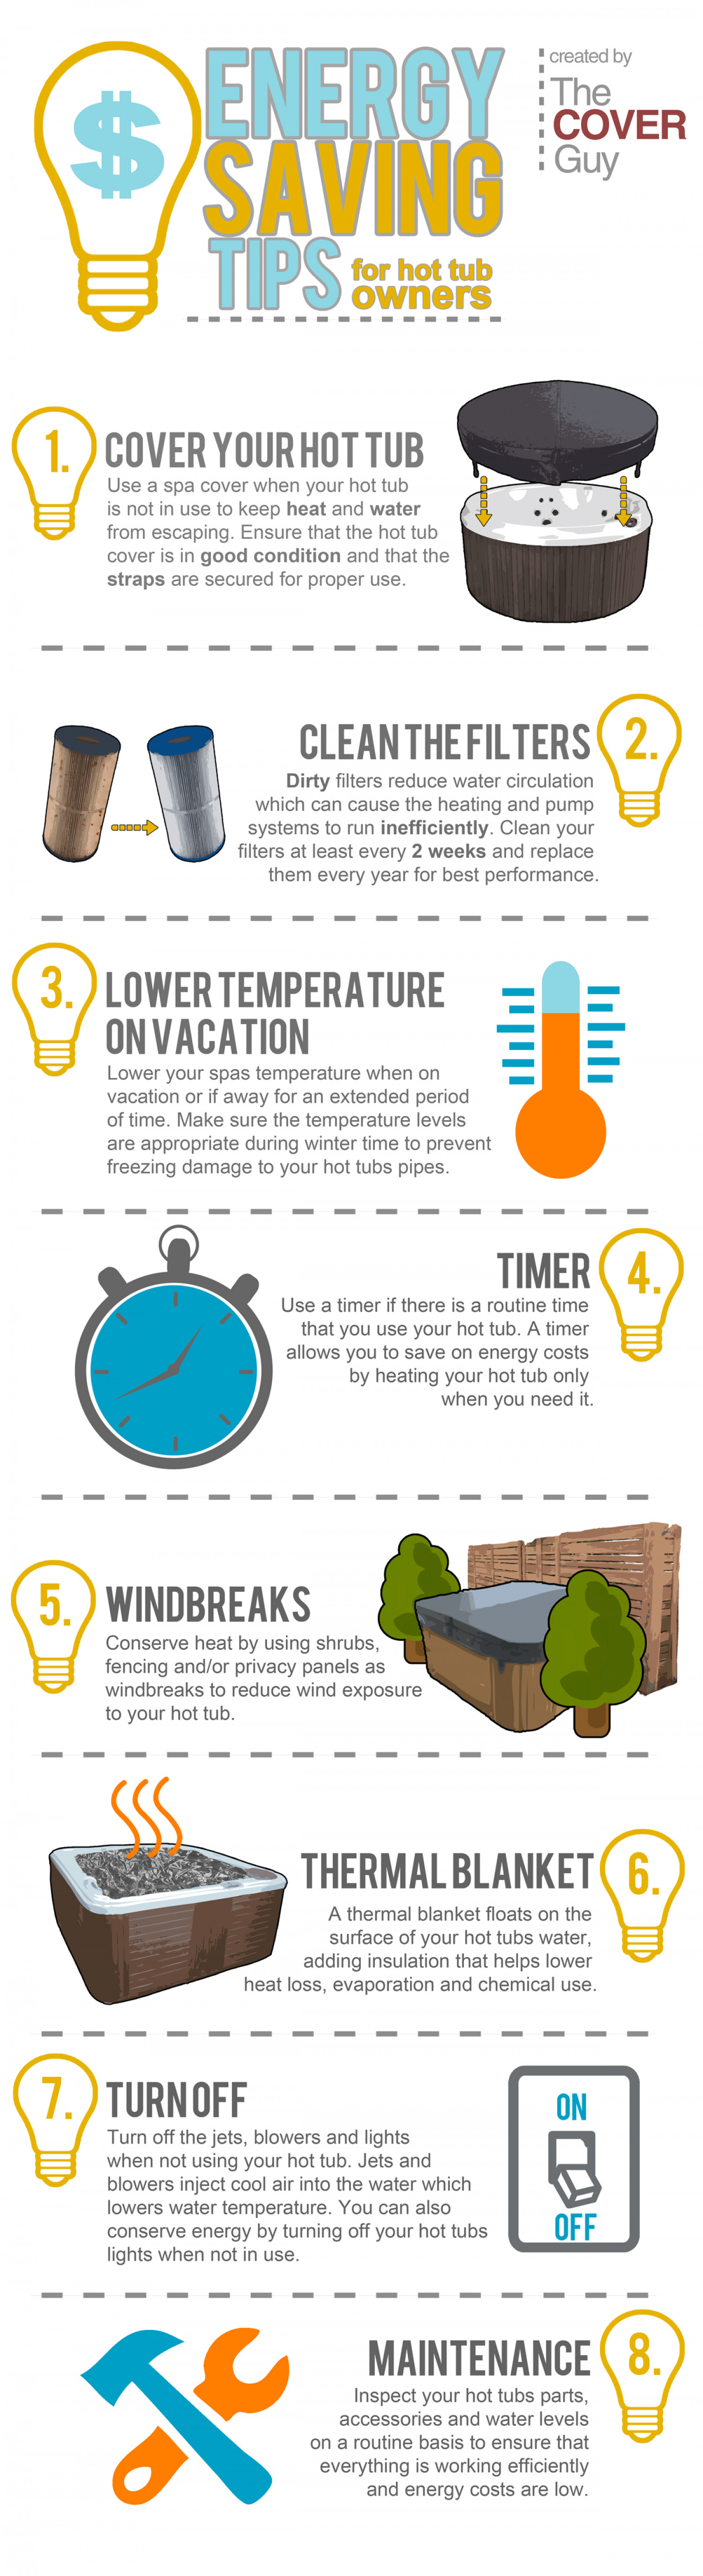 Energy Saving Tips for Hot Tub Owners Infographic